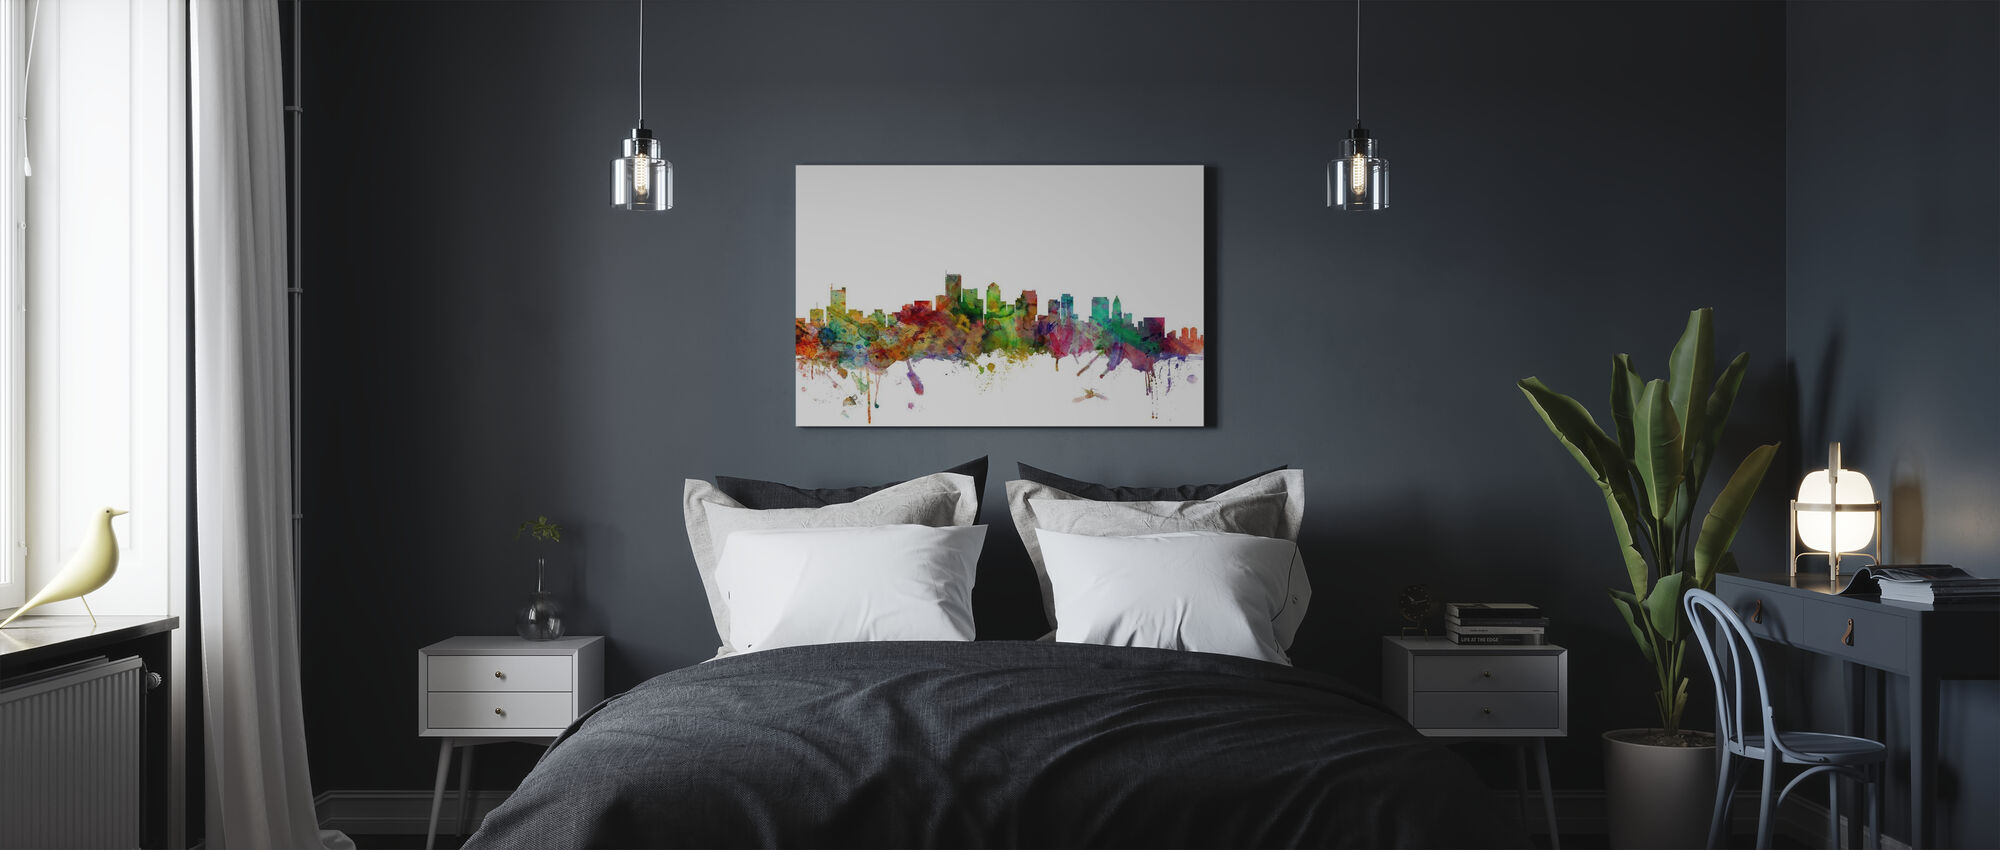 Boston Massachusetts Skyline - Canvas print - Bedroom